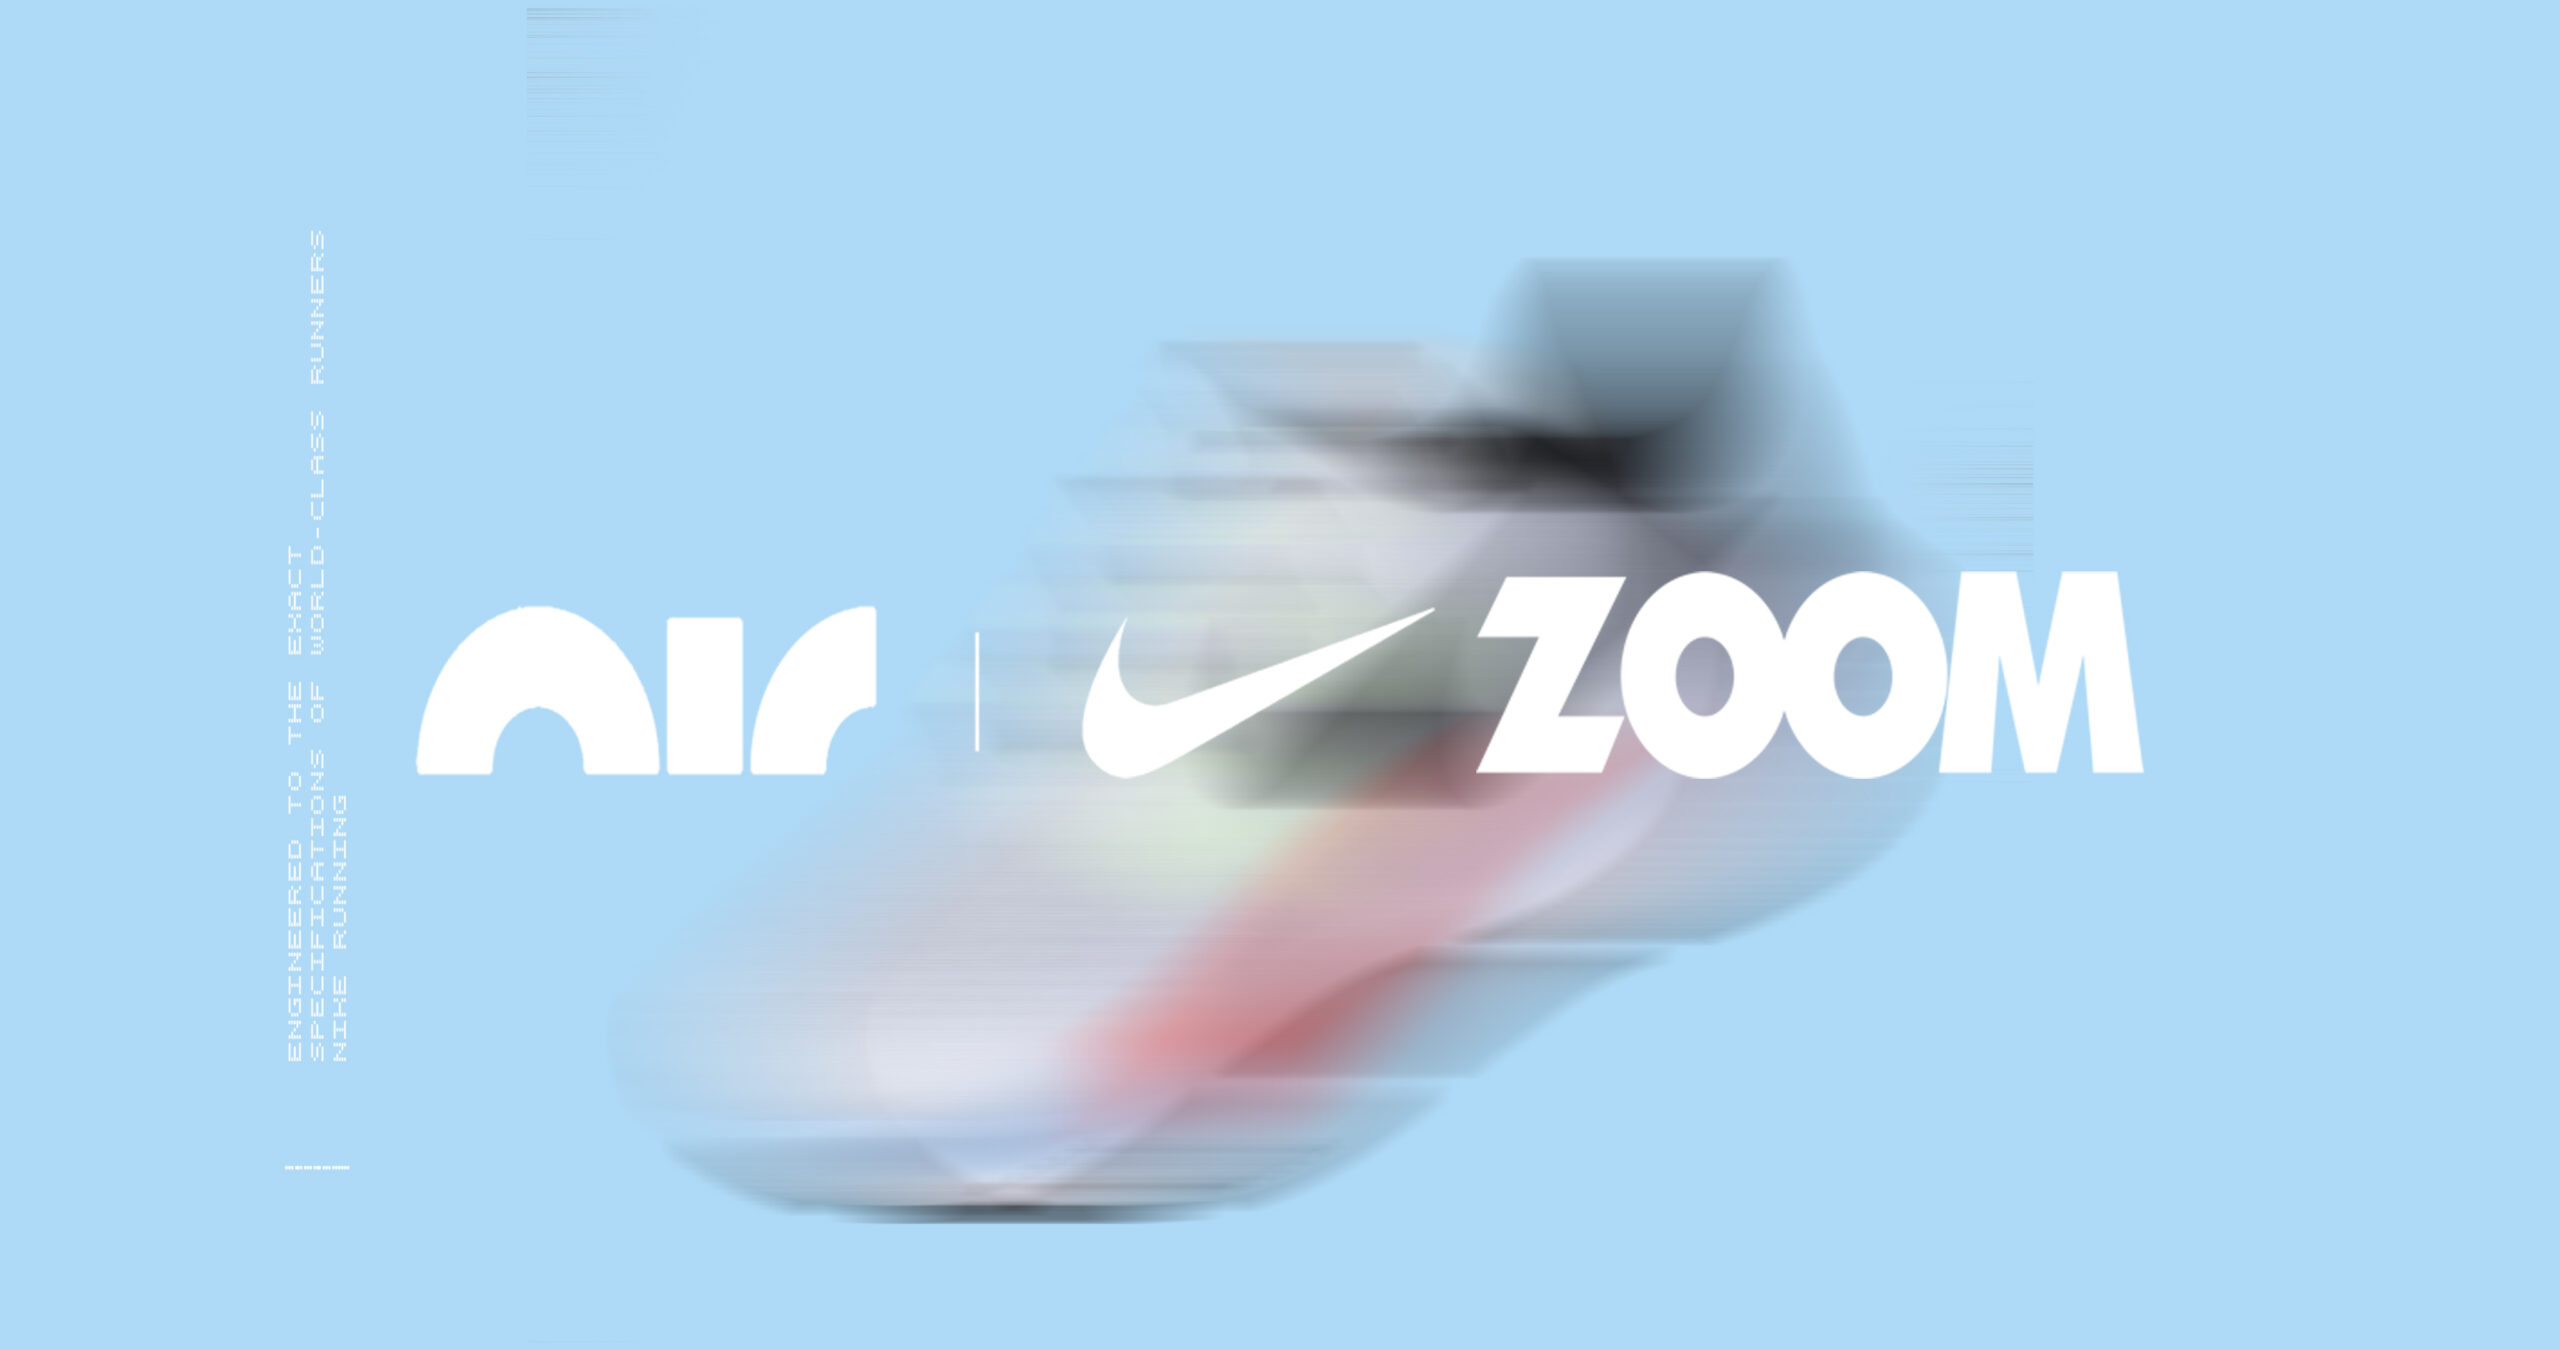 Aldo Chacun's image for Nike Air Zoom Ad